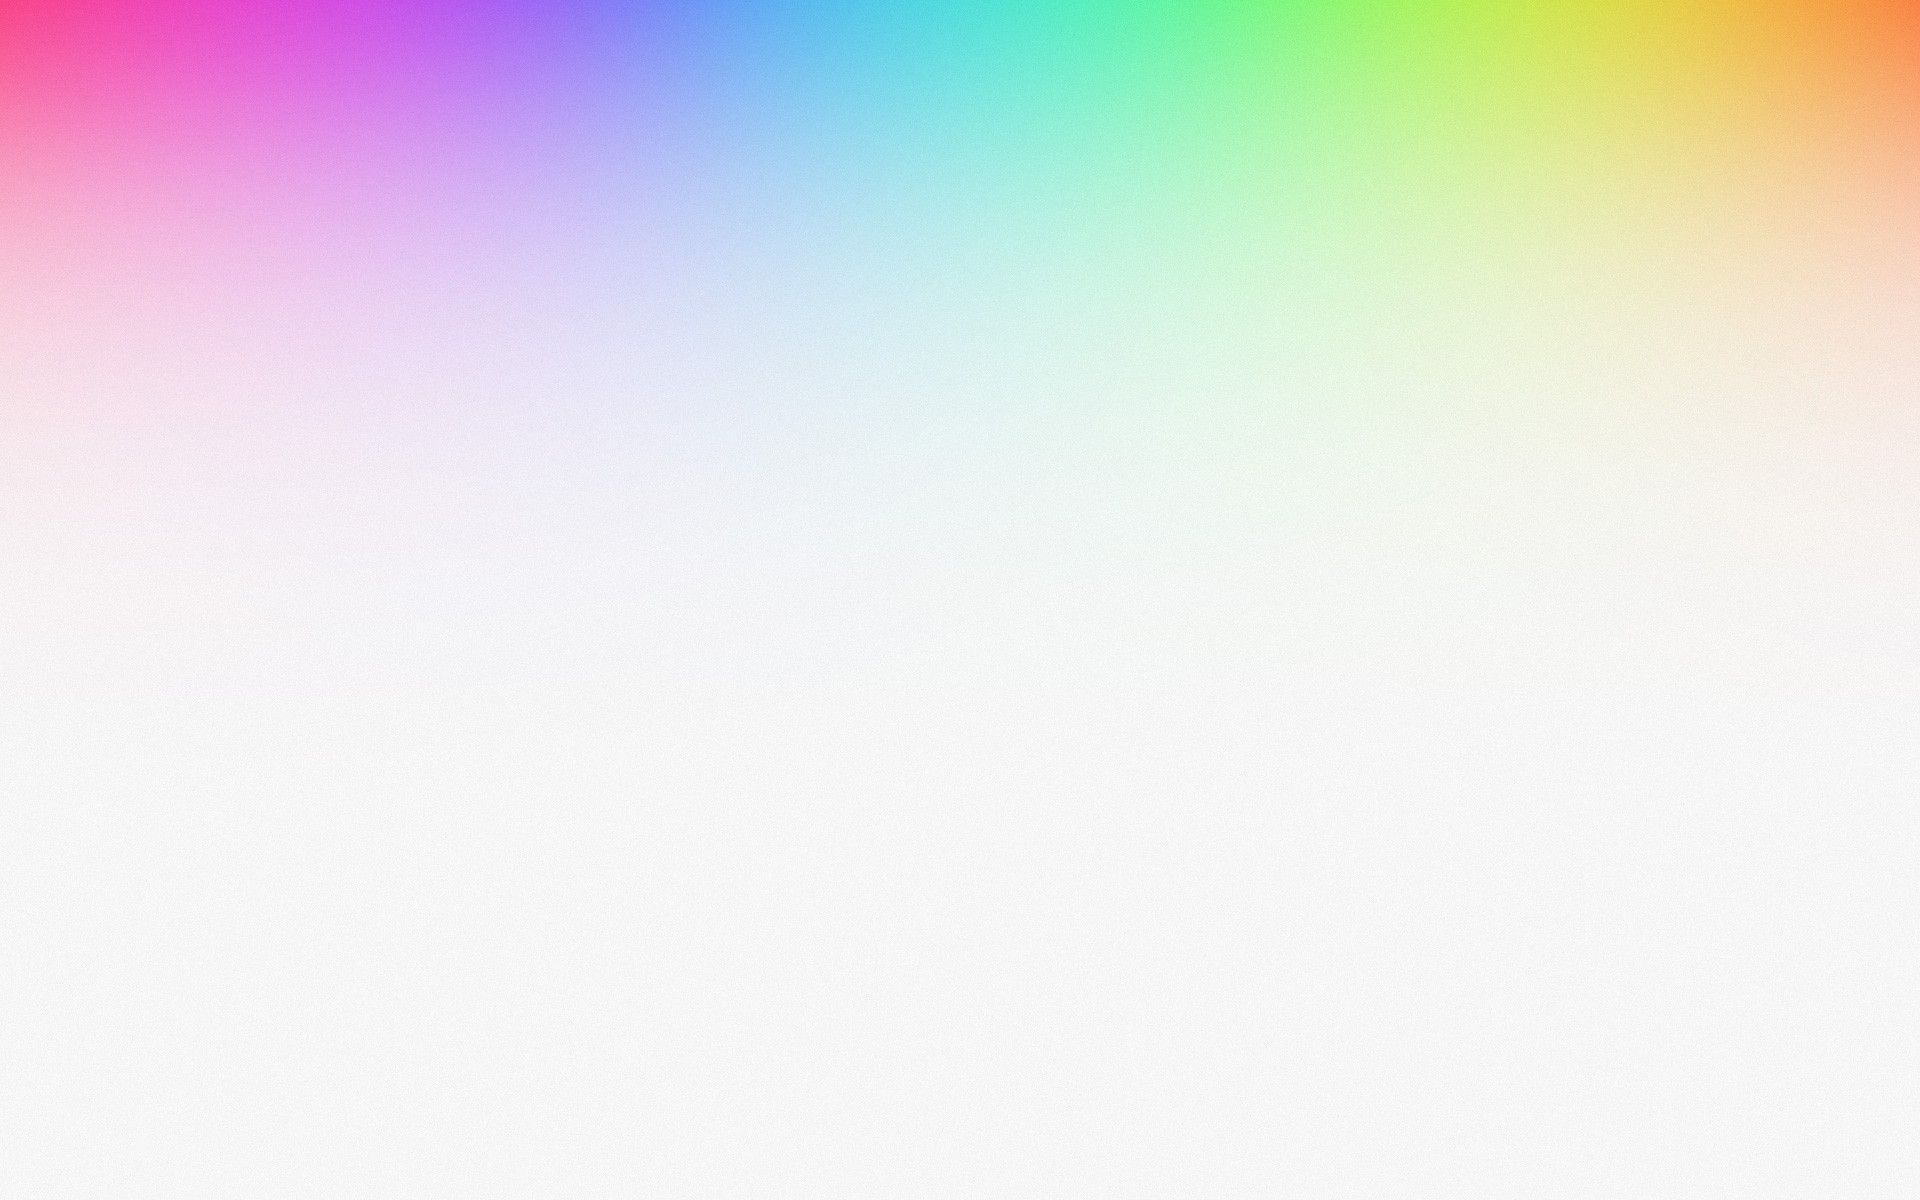 Cool White Background Hd Wallpapers Backgrounds Of Your Choice Iphone Wallpaper Pattern Free Background Images Rainbow Wallpaper